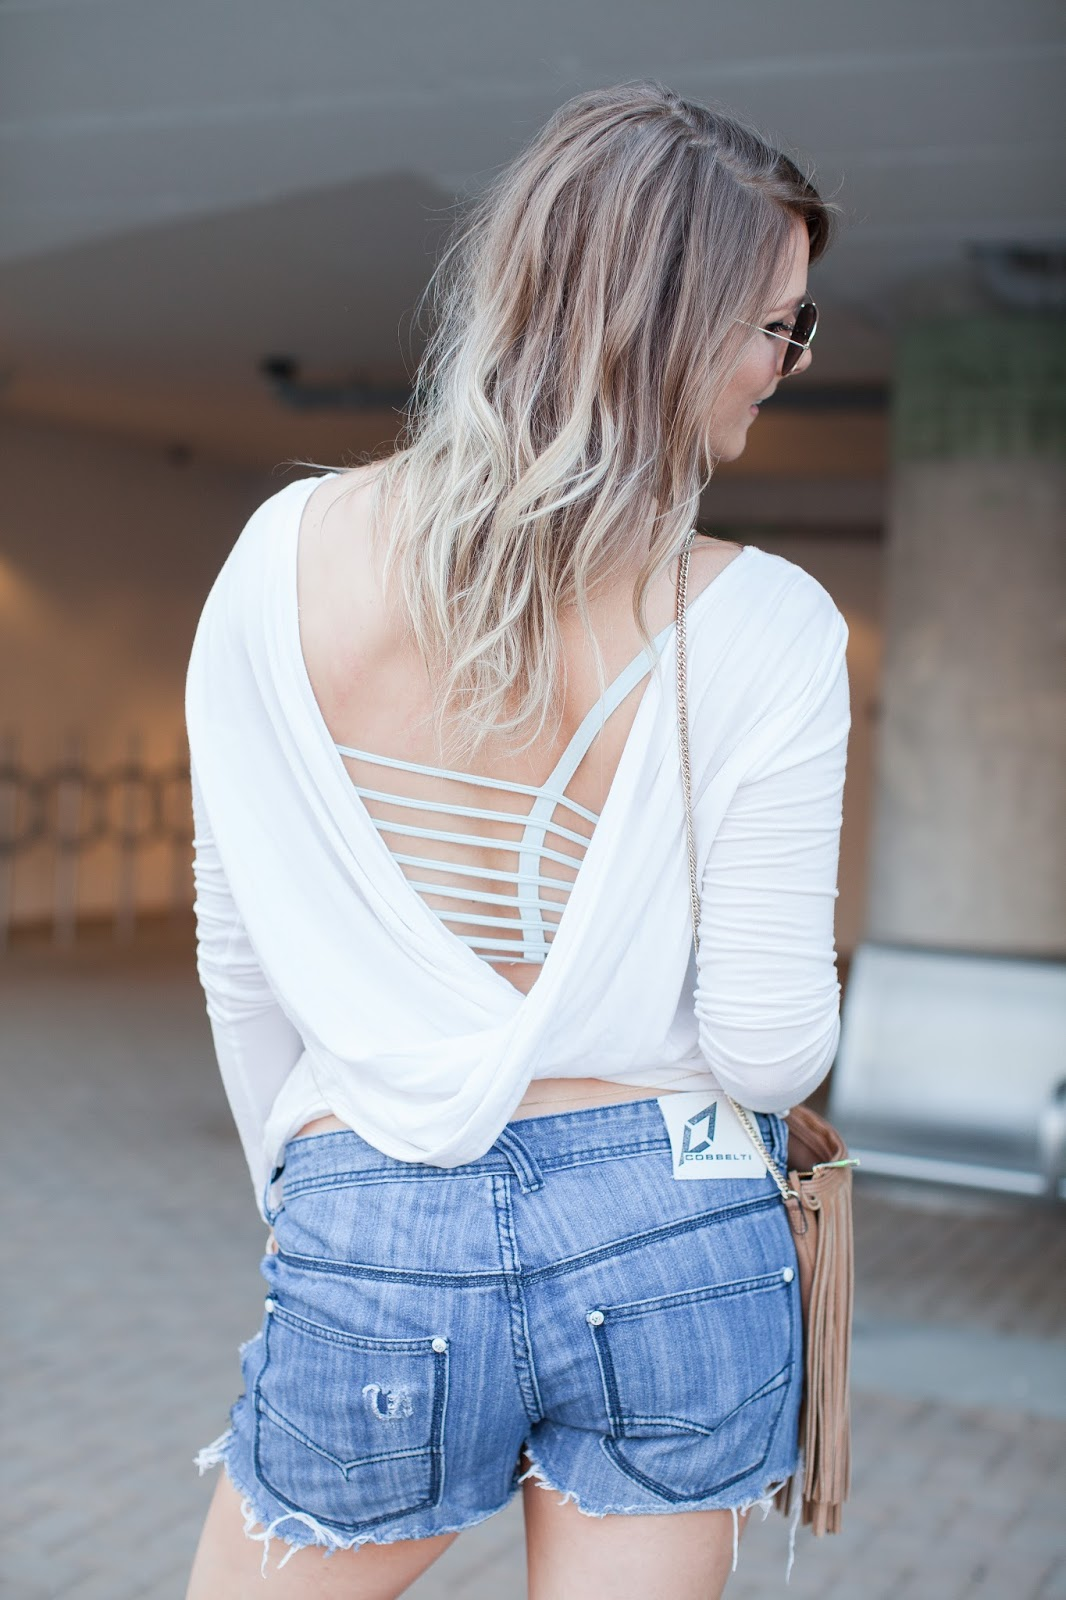 An Easy Way to Wear a Body Chain